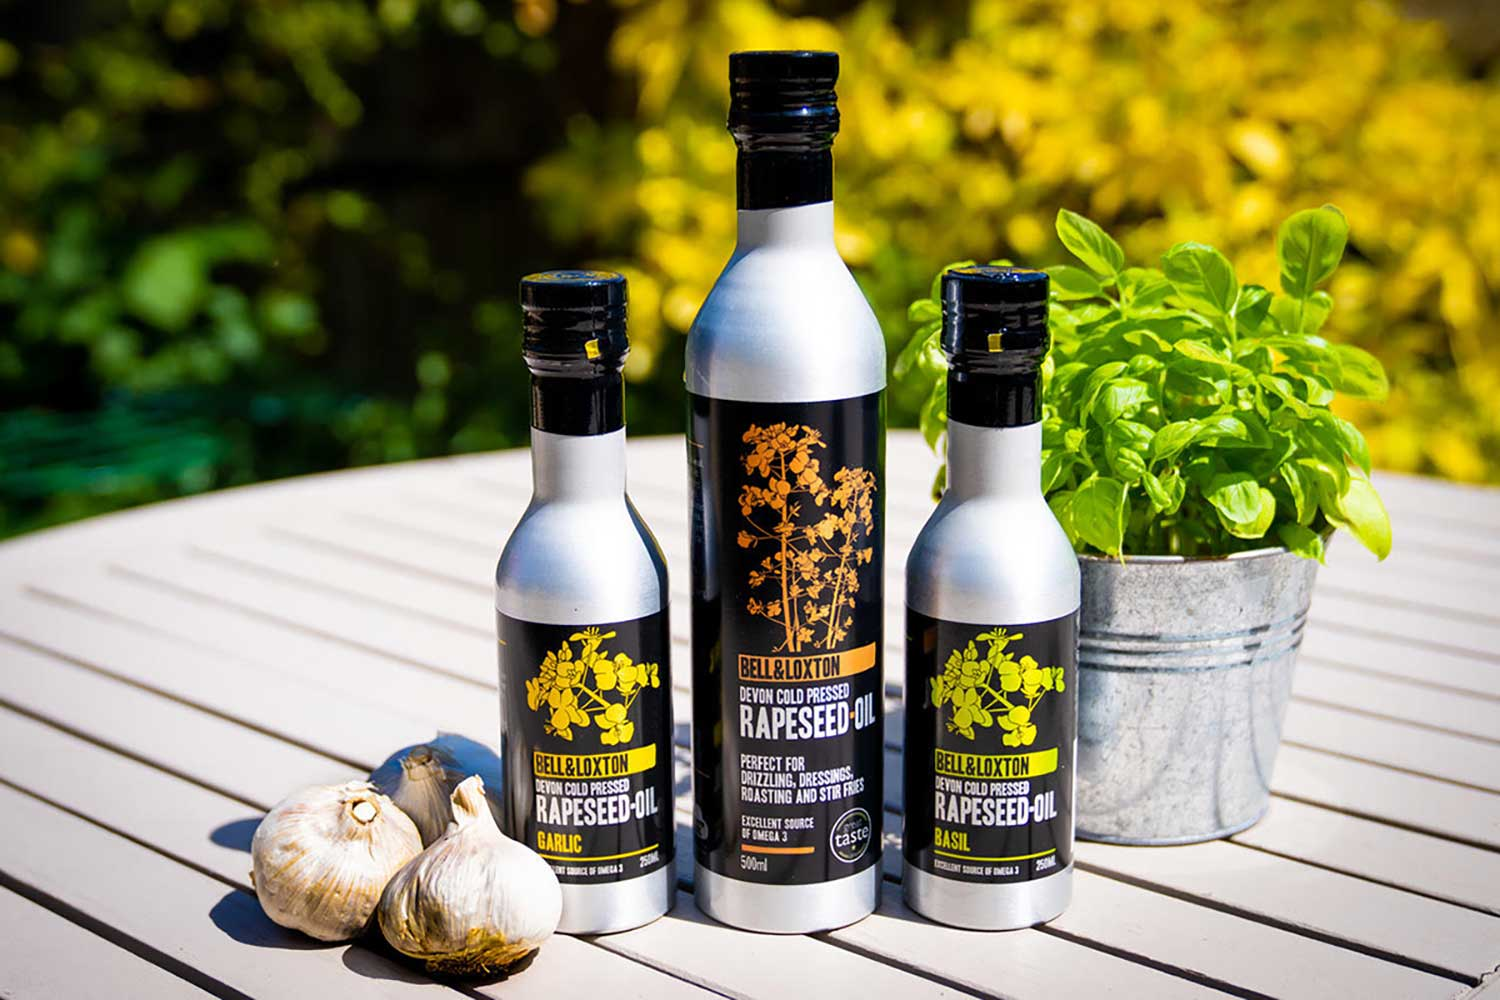 Bell & Loxton Cold Pressed Rapeseed Oils